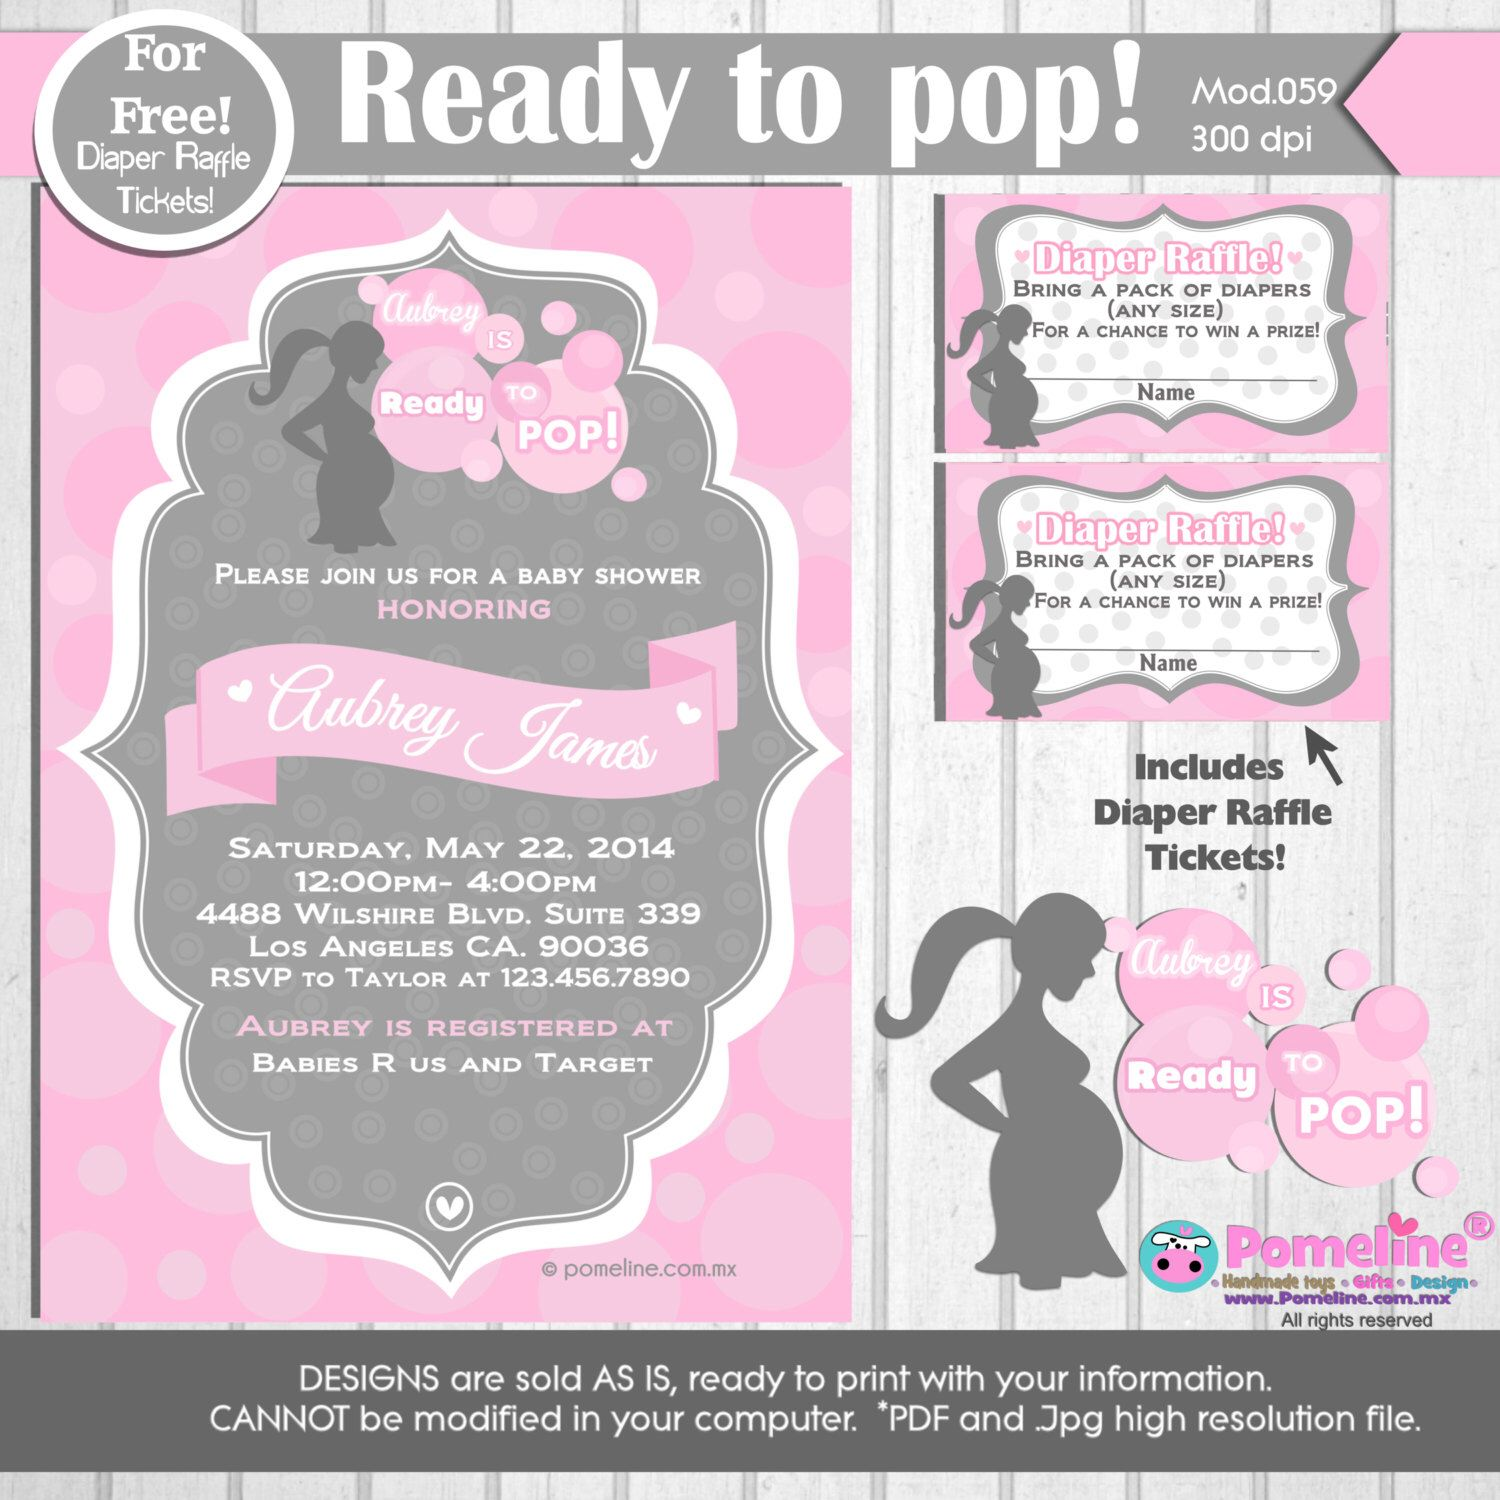 Printable Duo Invitation and Diaper raffle tickets Ready to pop